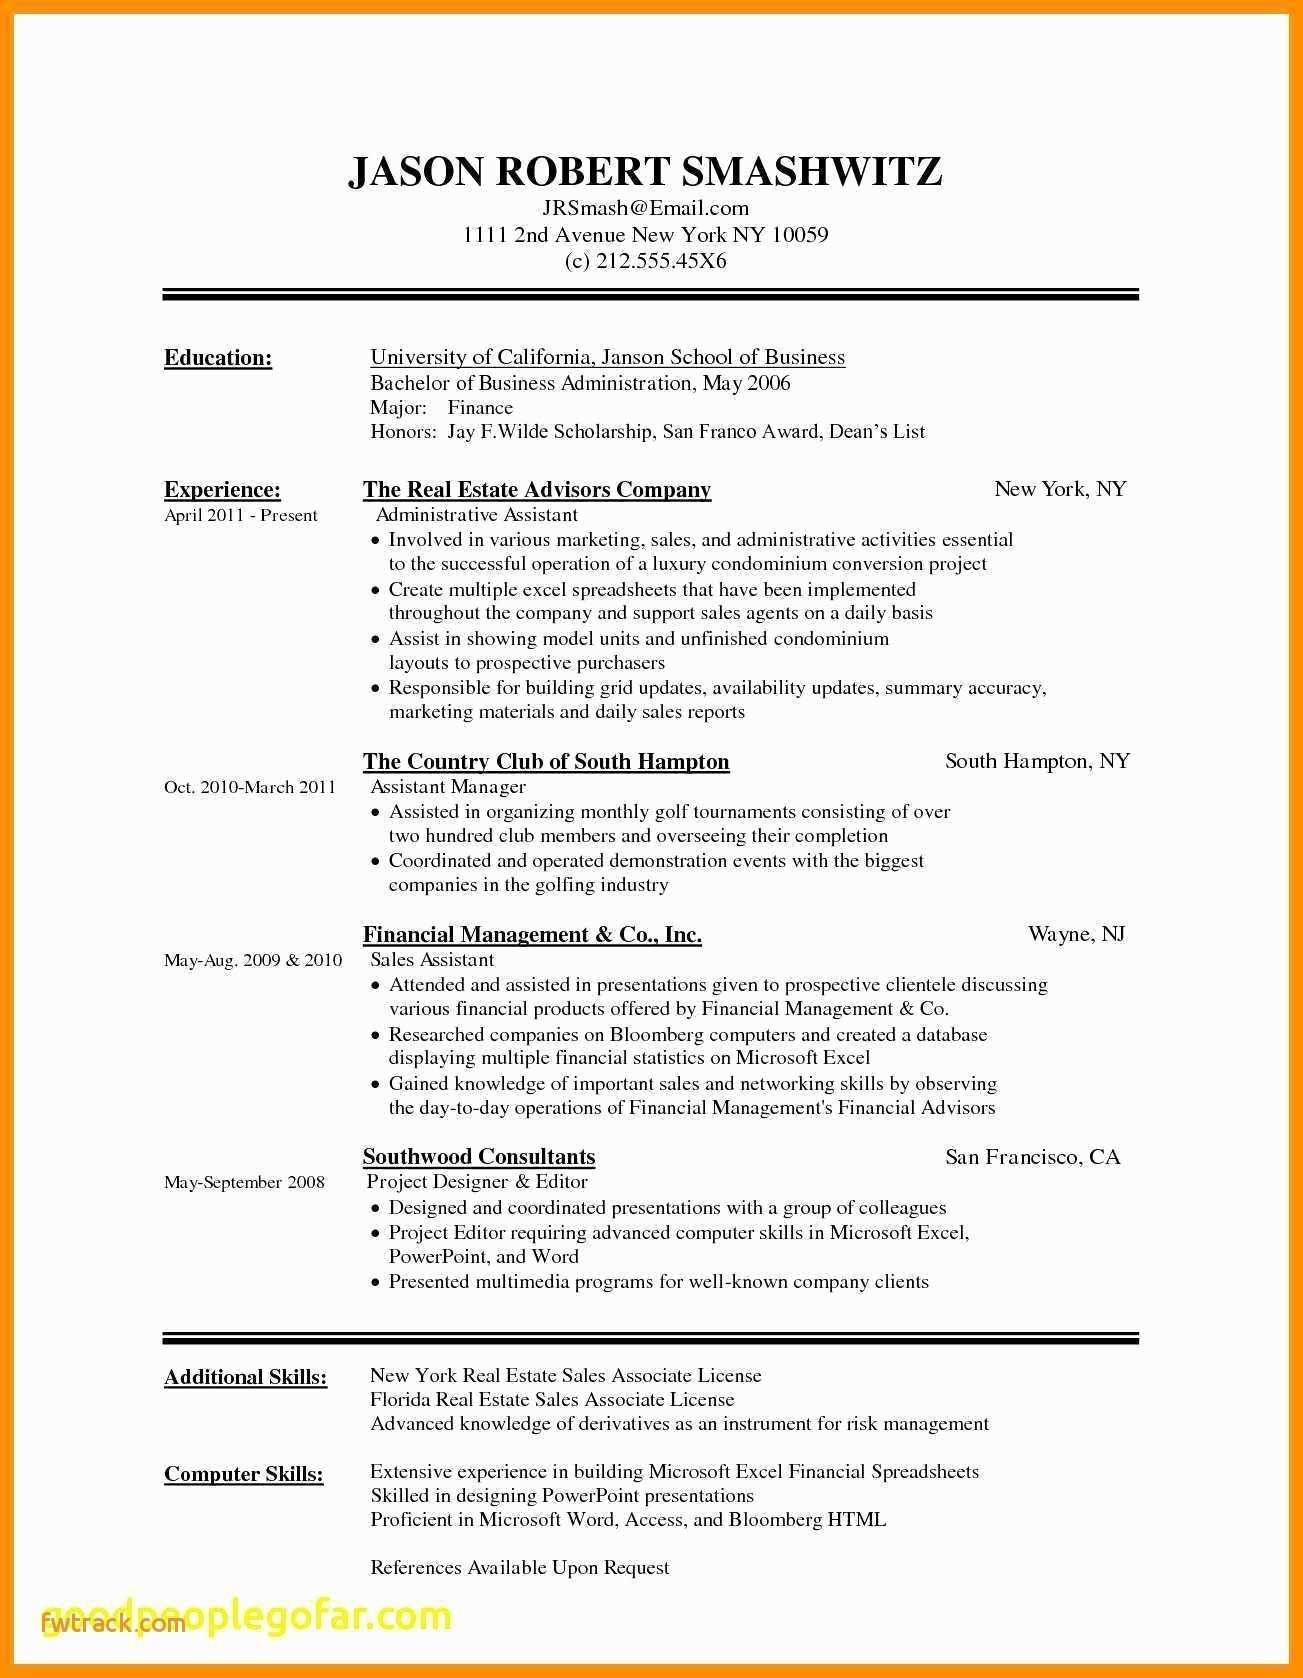 resume template pages example-Resume Templates for Pages 16-j